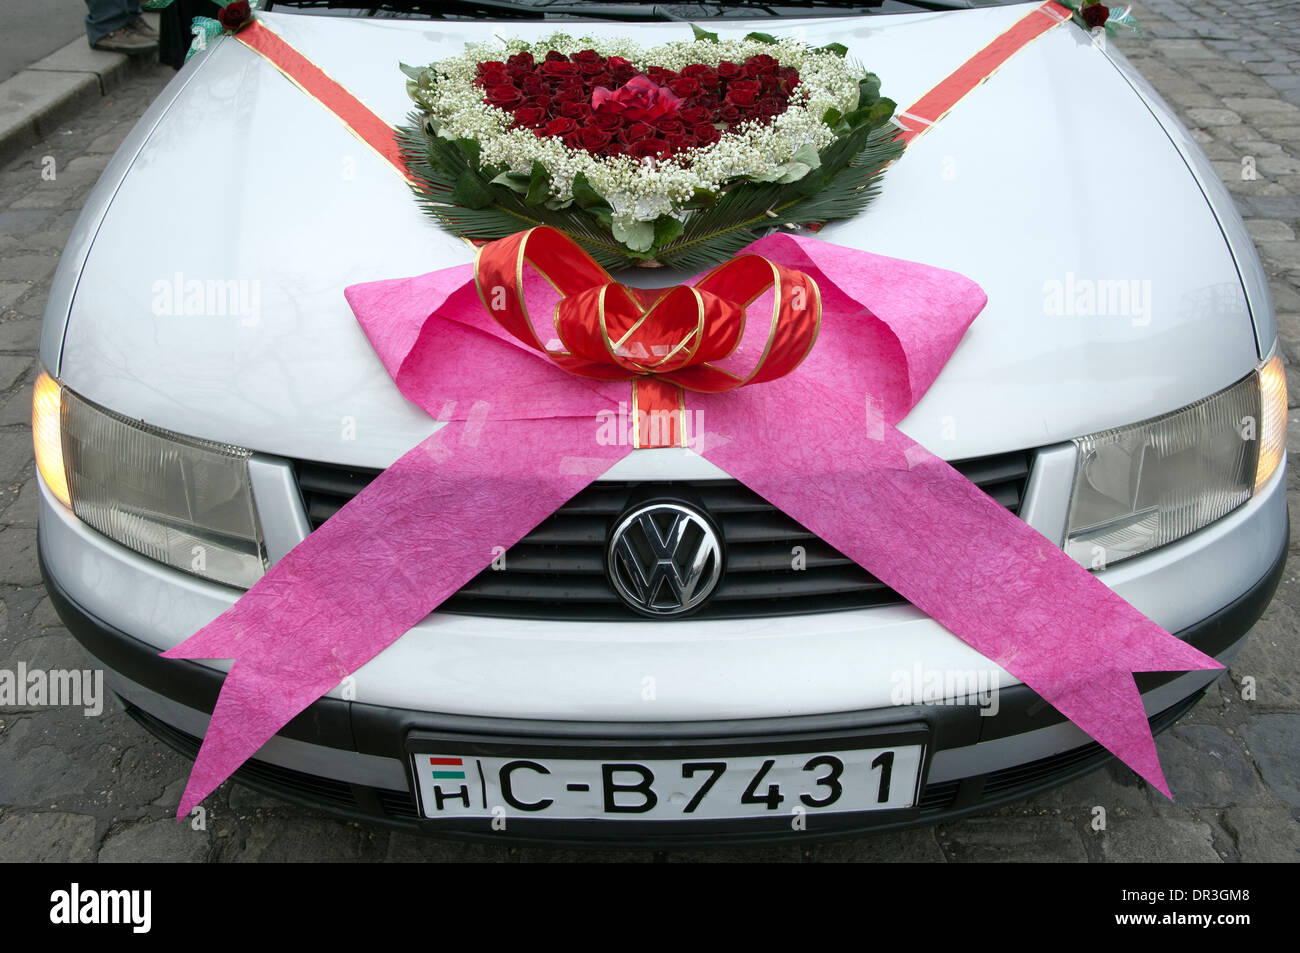 Wedding Car Ribbons Imágenes De Stock & Wedding Car Ribbons Fotos De ...